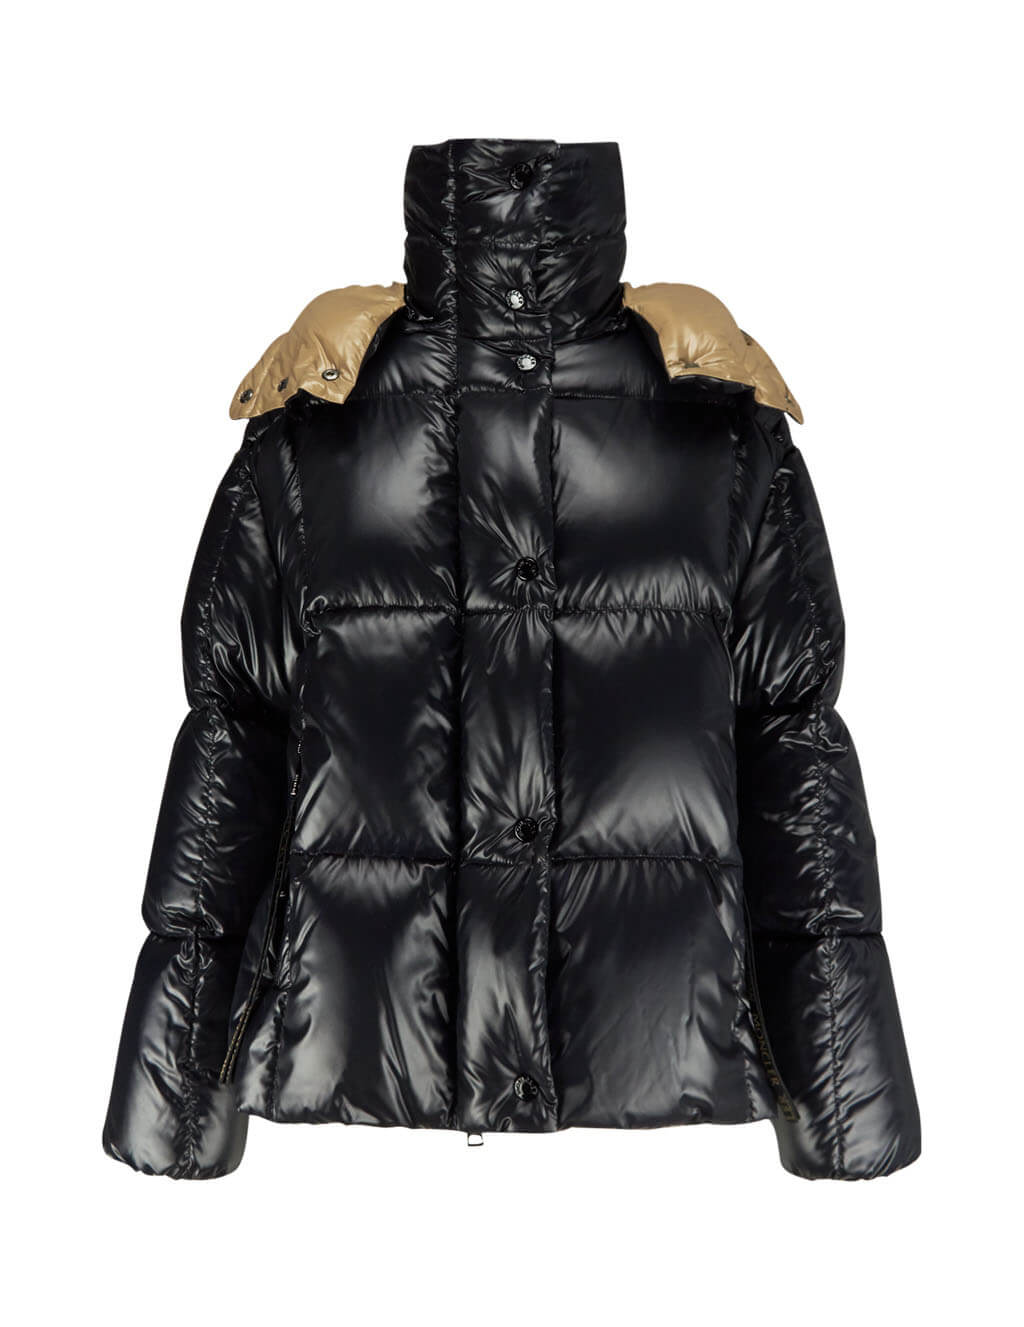 Moncler Women's Black Parana Jacket 4698505C0067999